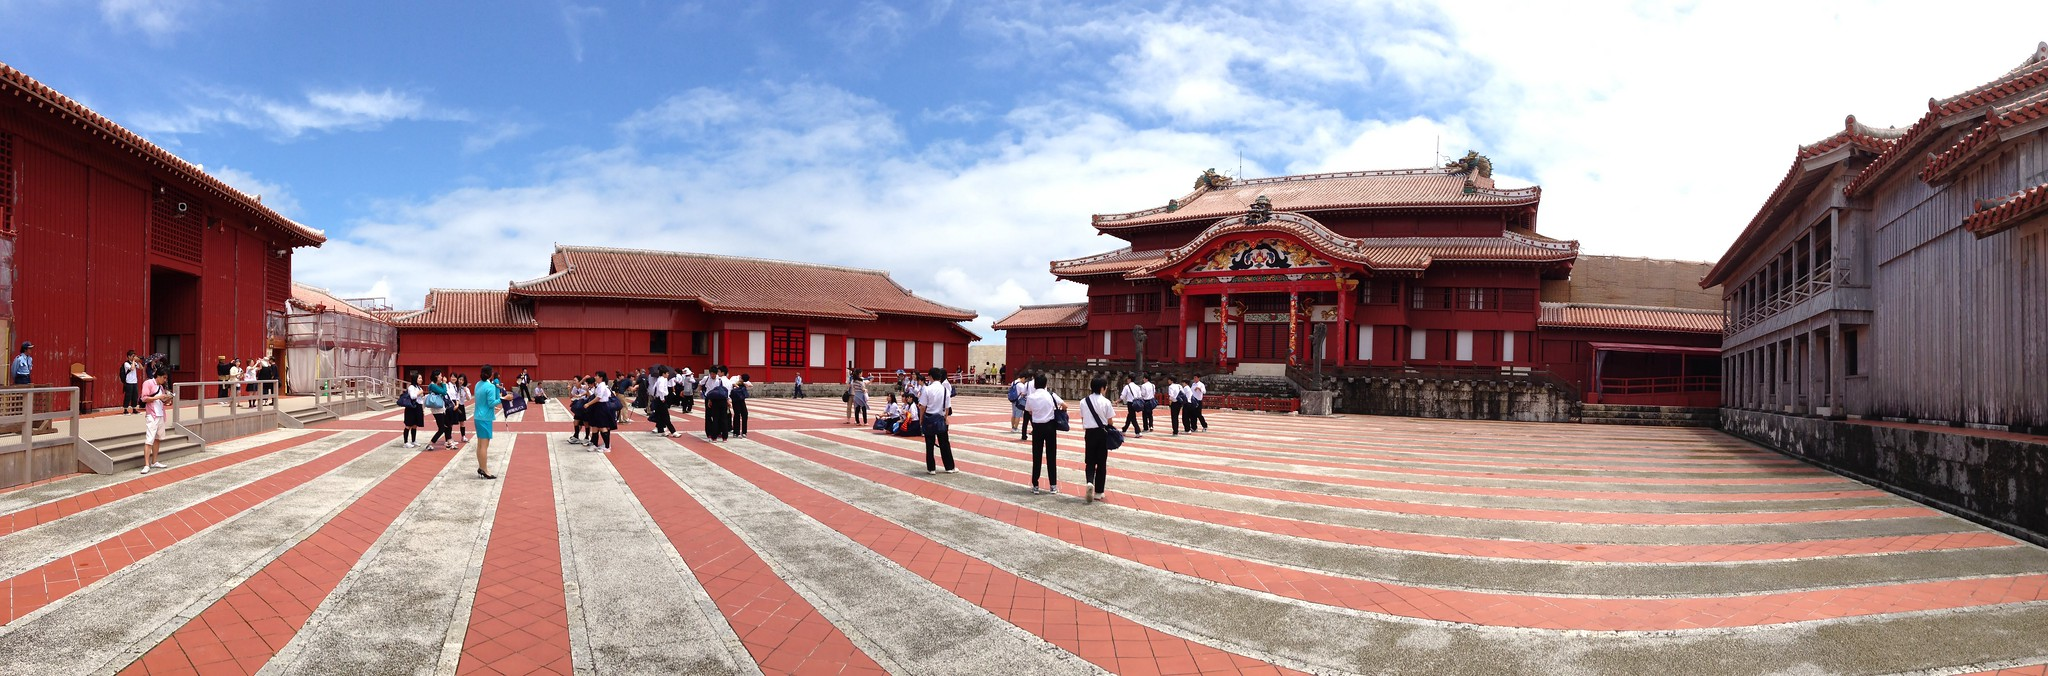 Shuri Castle (2013). Image by かがみ~ (Kagami). Image original location here. Licensed under:  CC BY-NC-ND 2.0